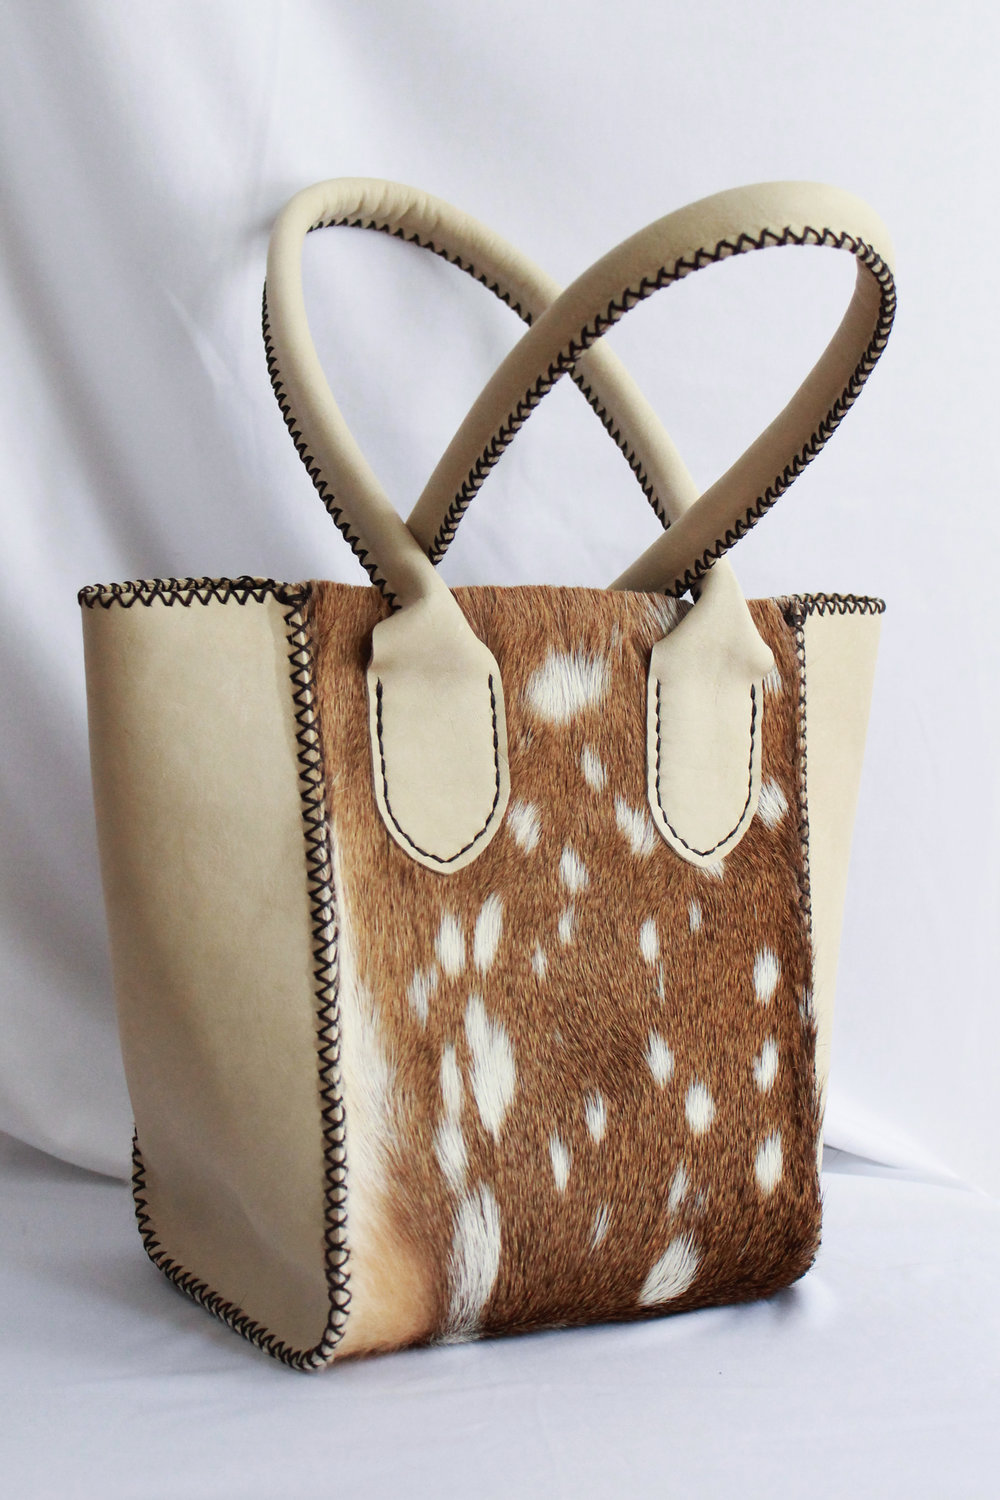 This amazing purse utilizes a vertical shape to get the most impact out of a great portion of Axis hair leather.